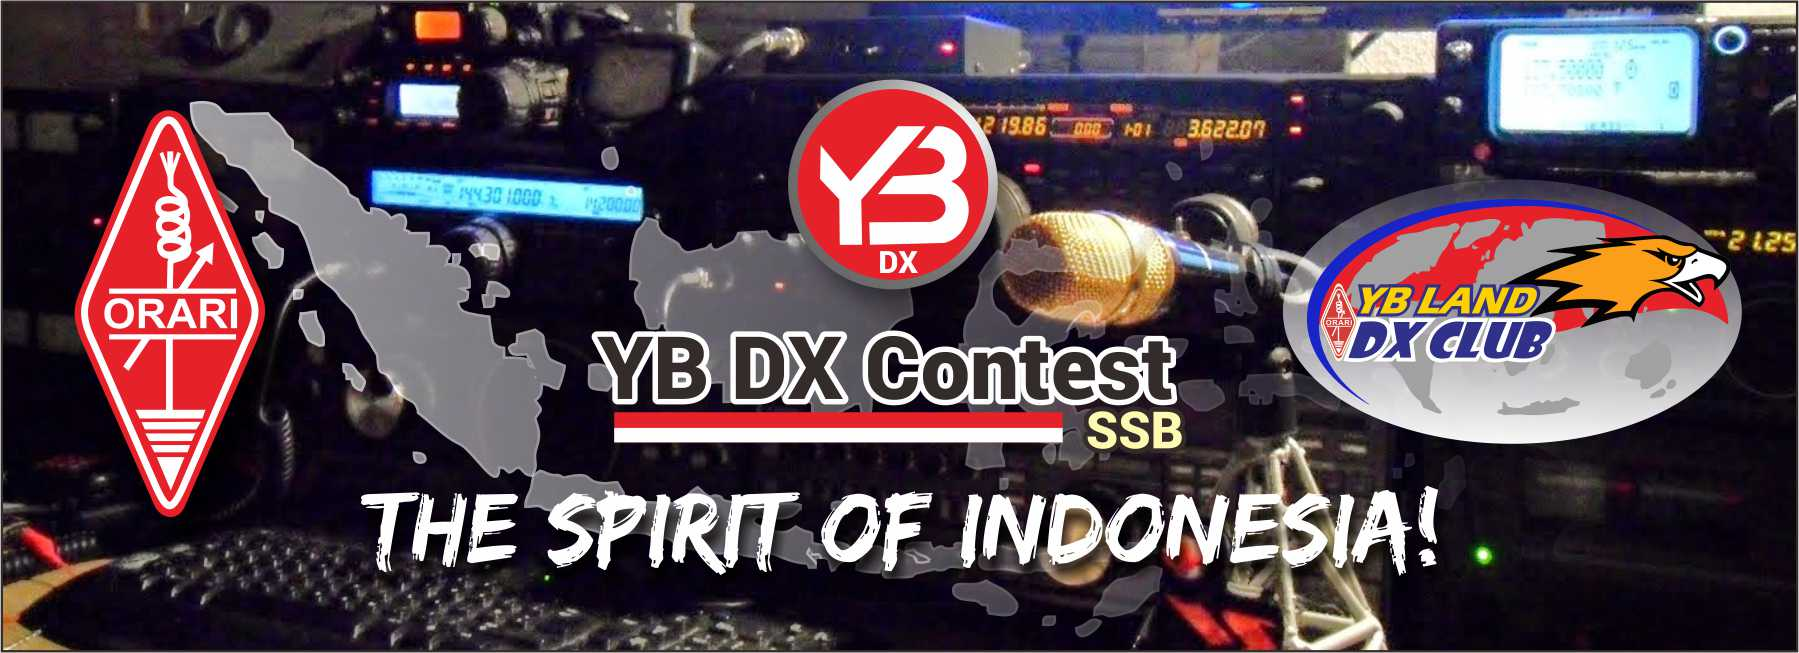 Invitation to participate from ORARI headquarters: YB DX Contest 2018